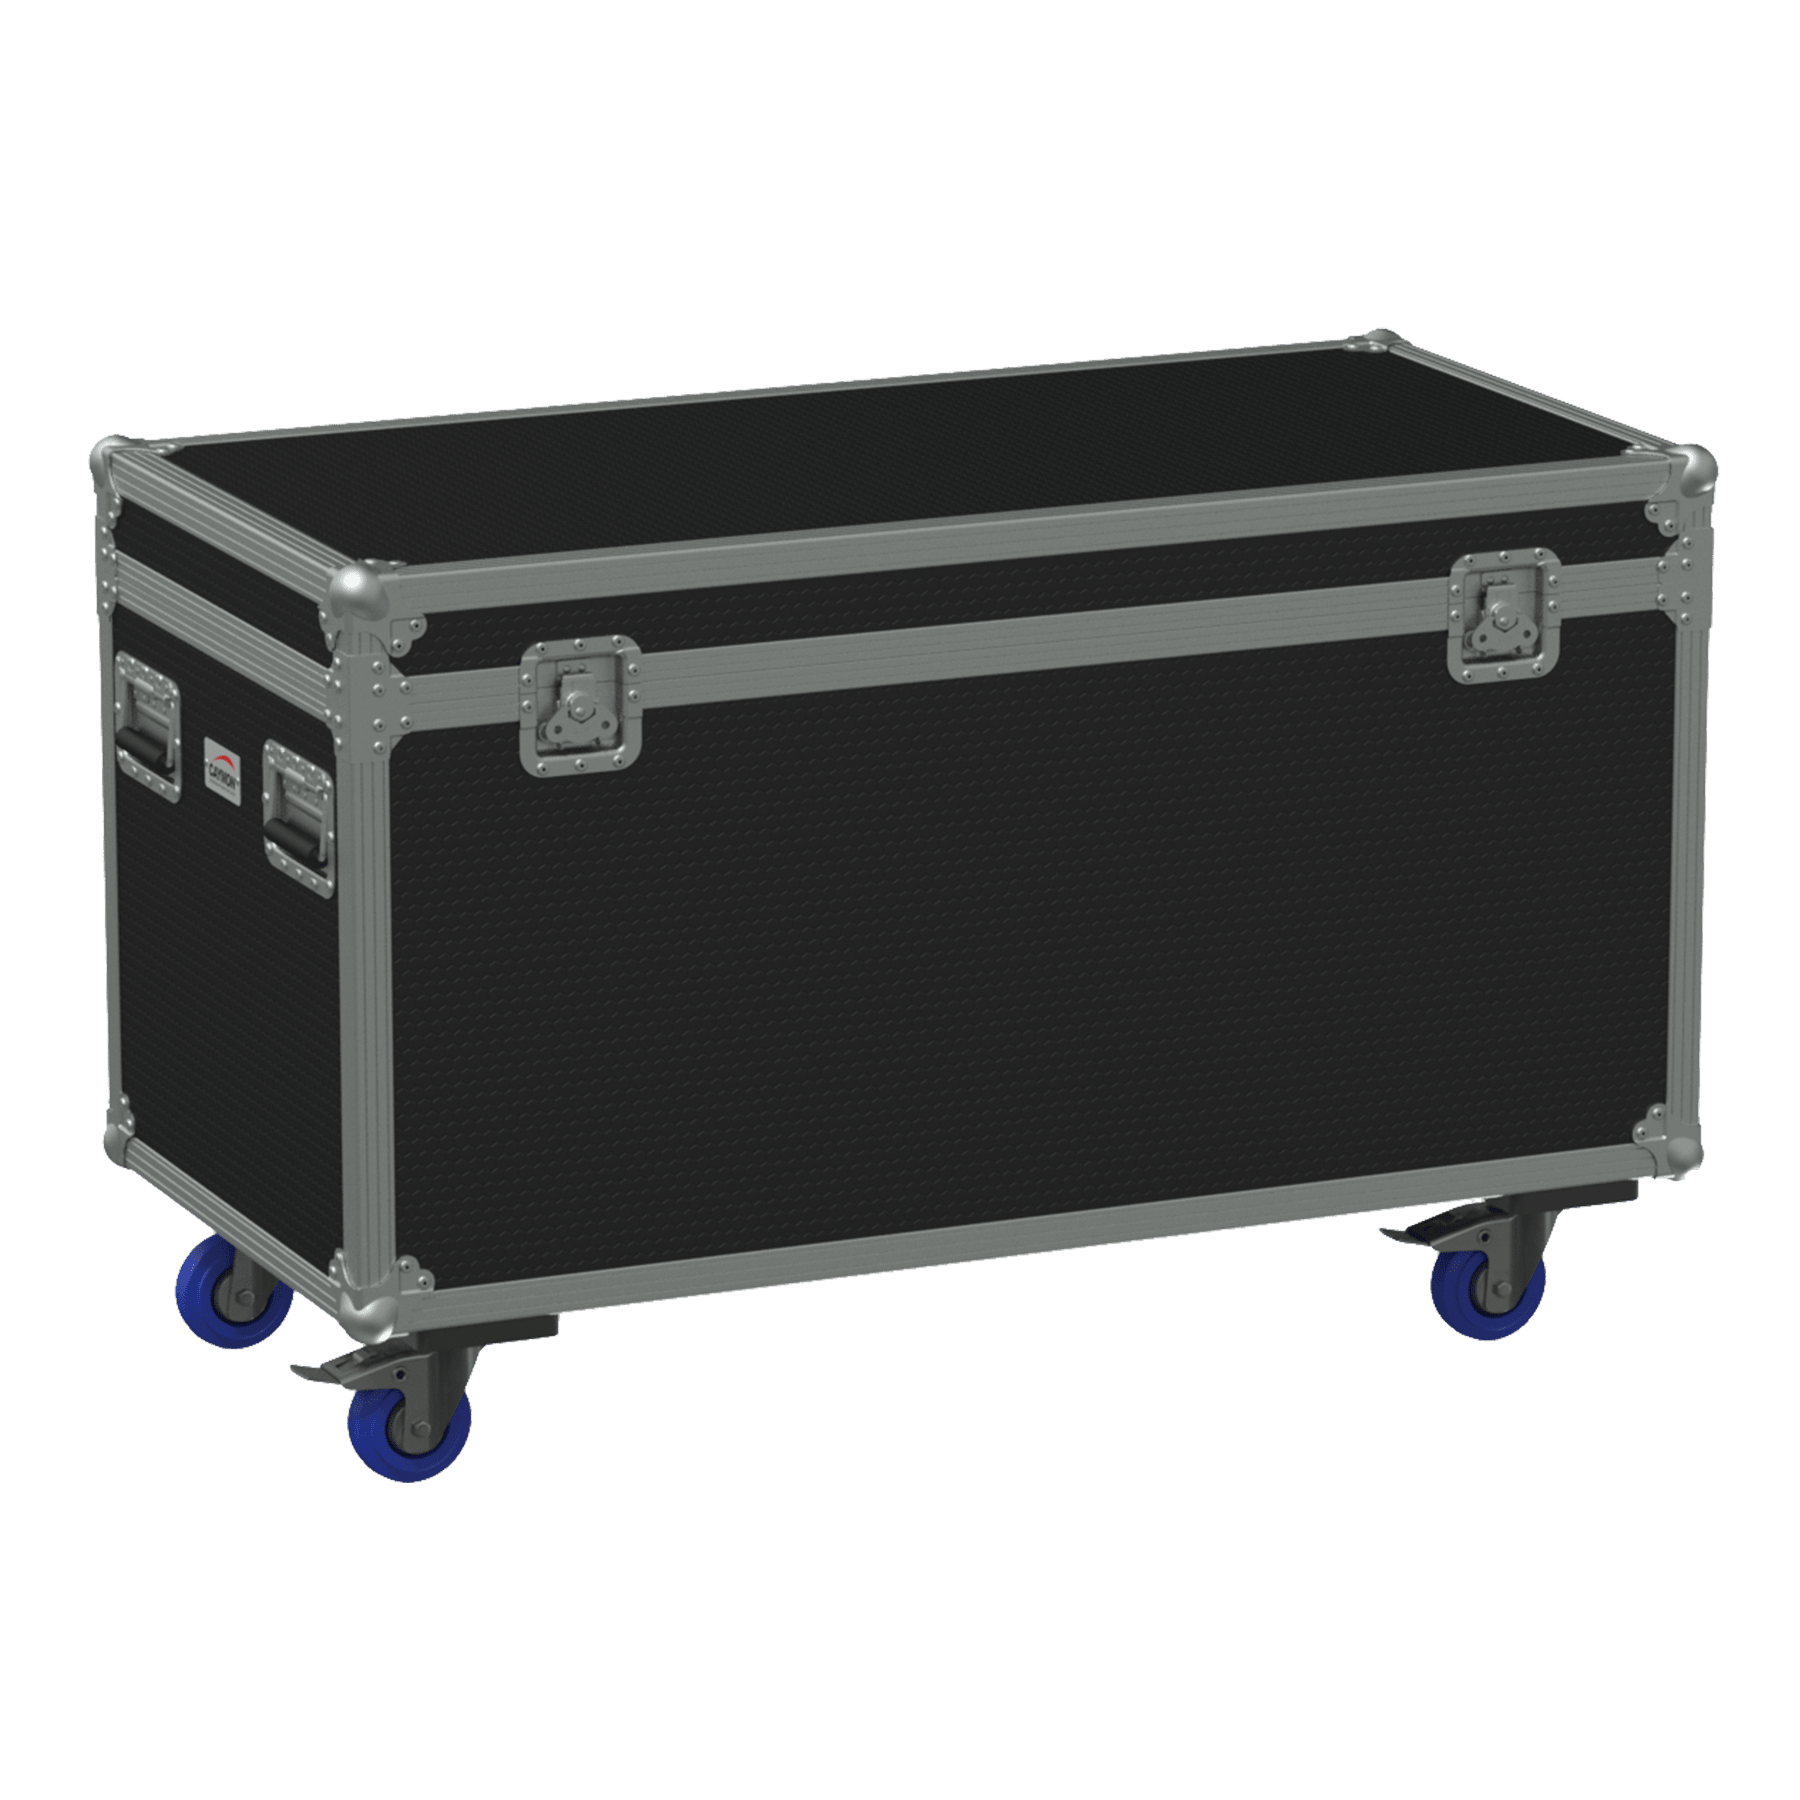 FCE126H - Flightcase euro 1120x600x620m m with hinge cover, wheels included